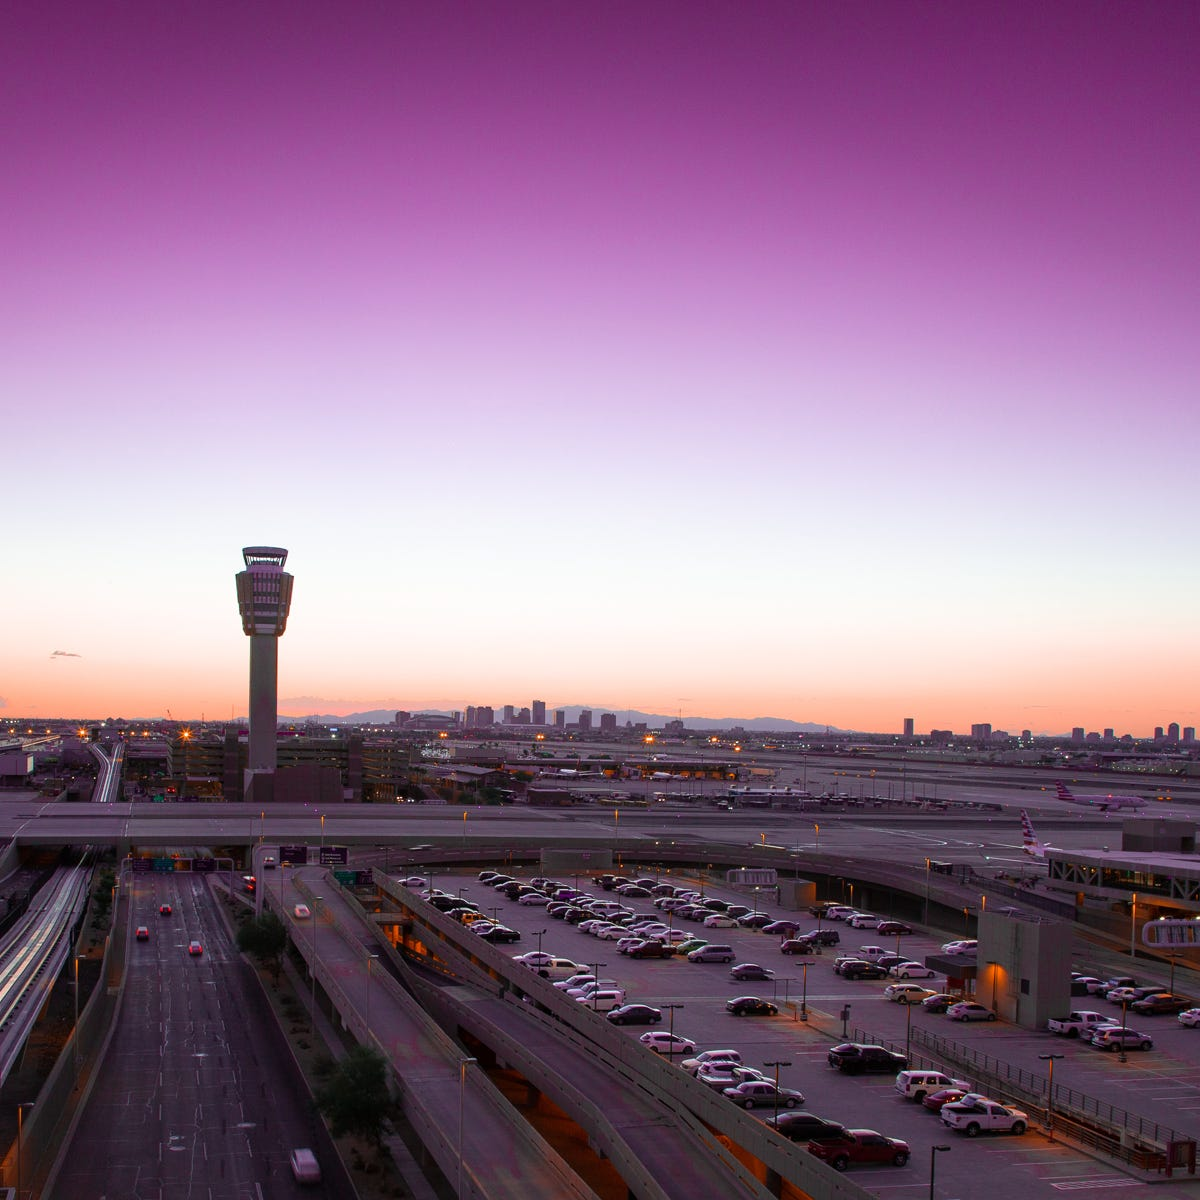 New survey reveals the typical Sky Harbor Airport passenger. Is it you?